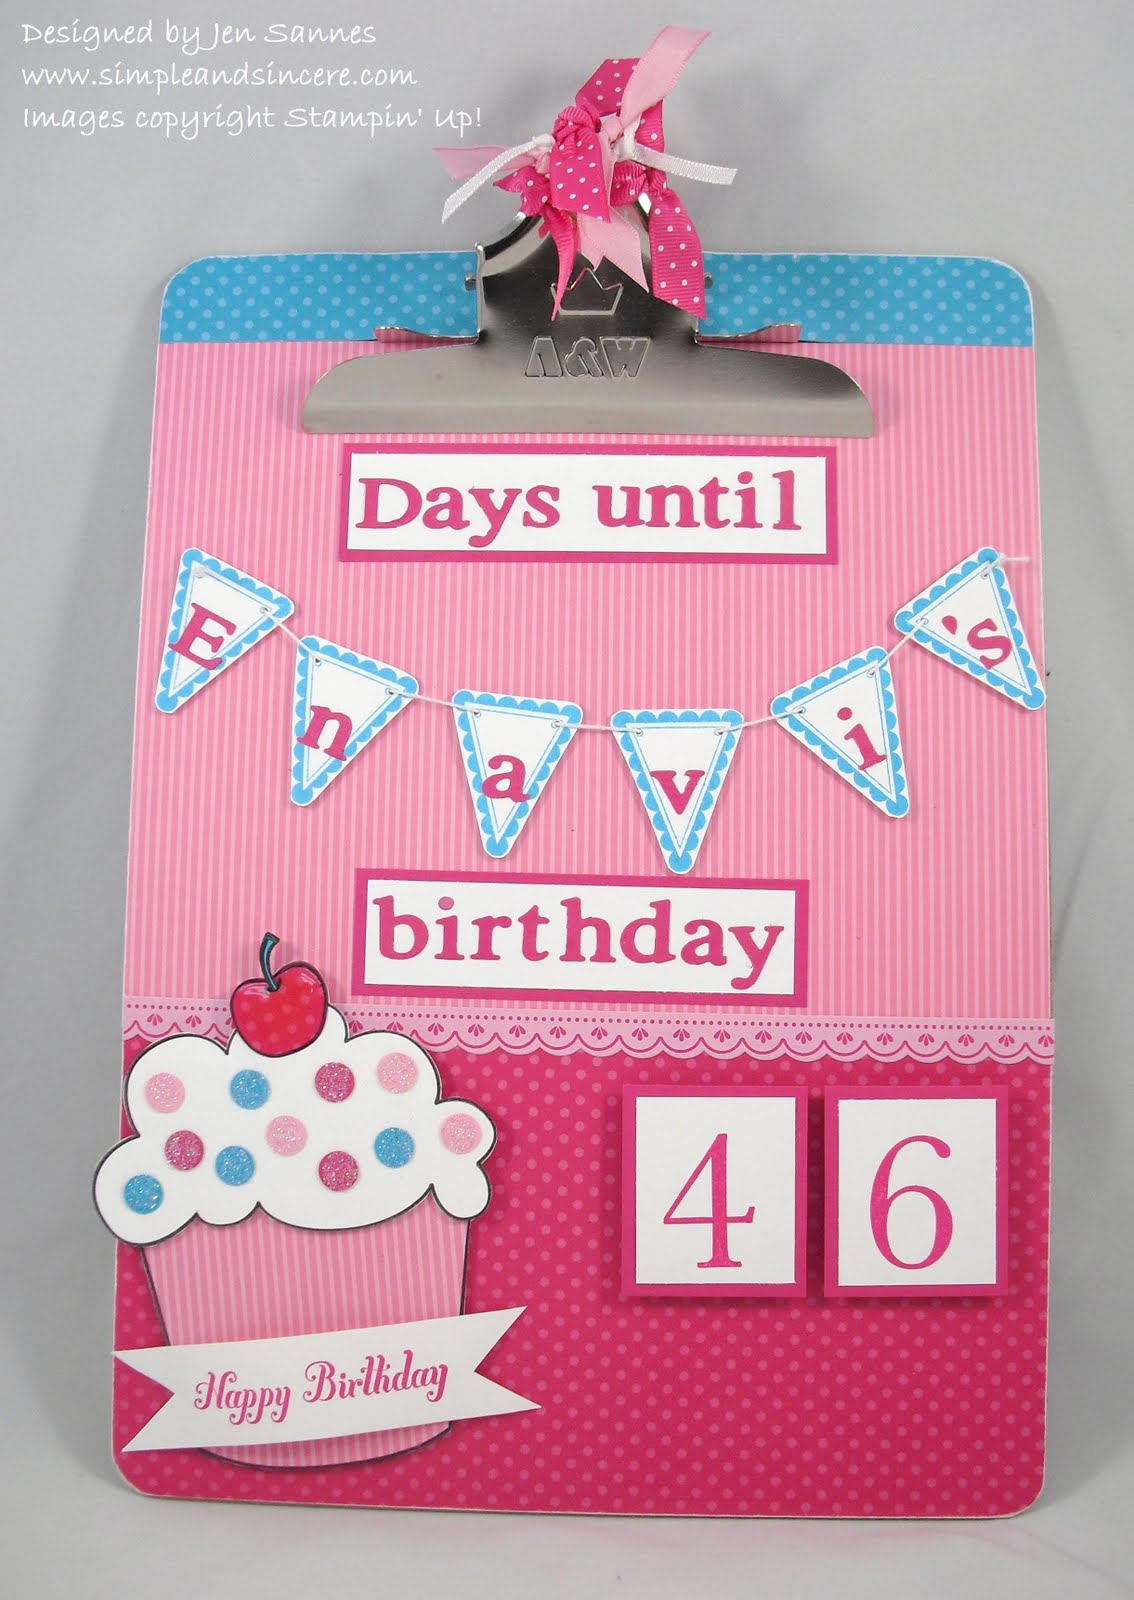 Simple Amp Sincere Birthday Countdown Clipboard